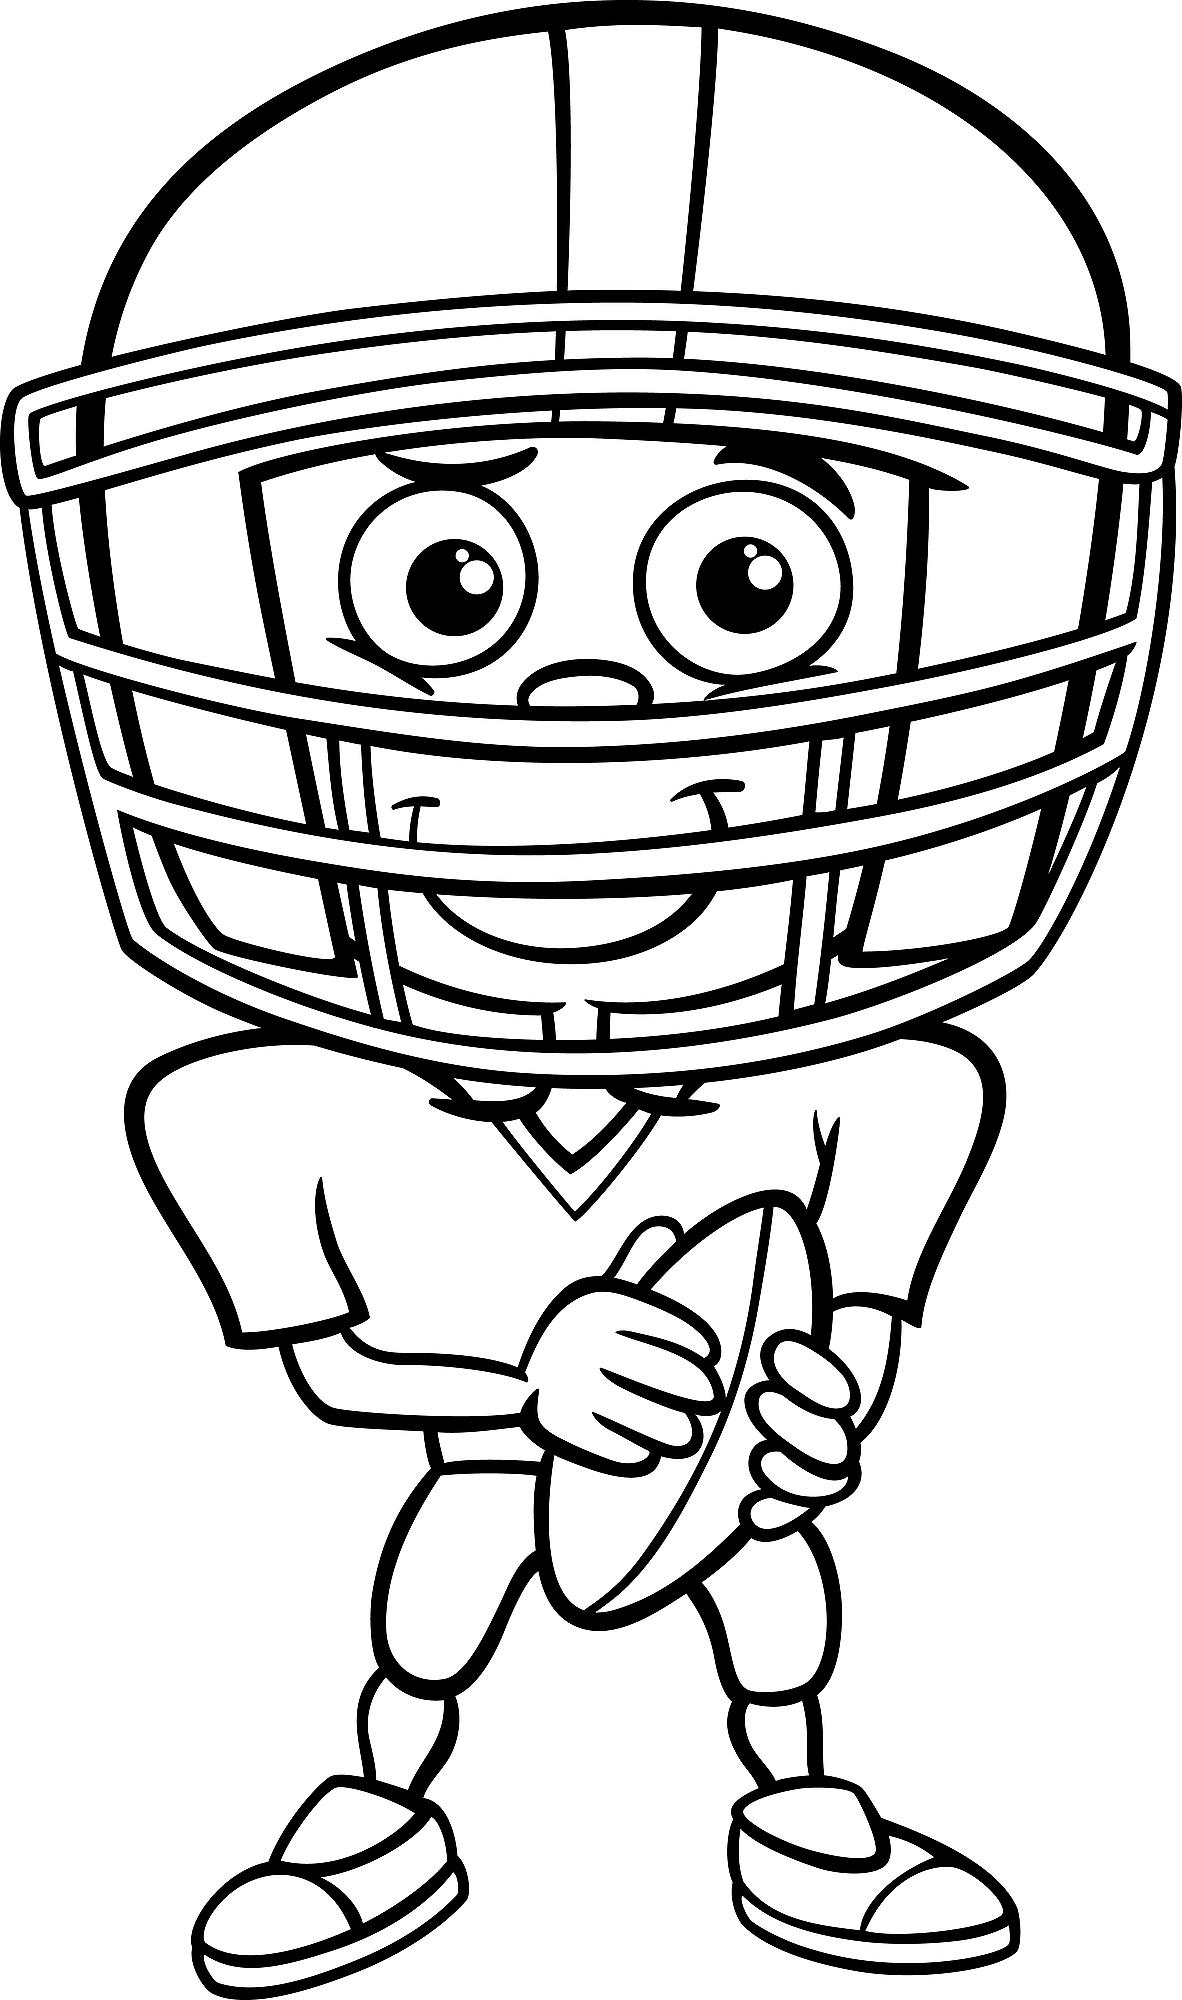 - Football Coloring Pages: Printable Sports Coloring & Activity